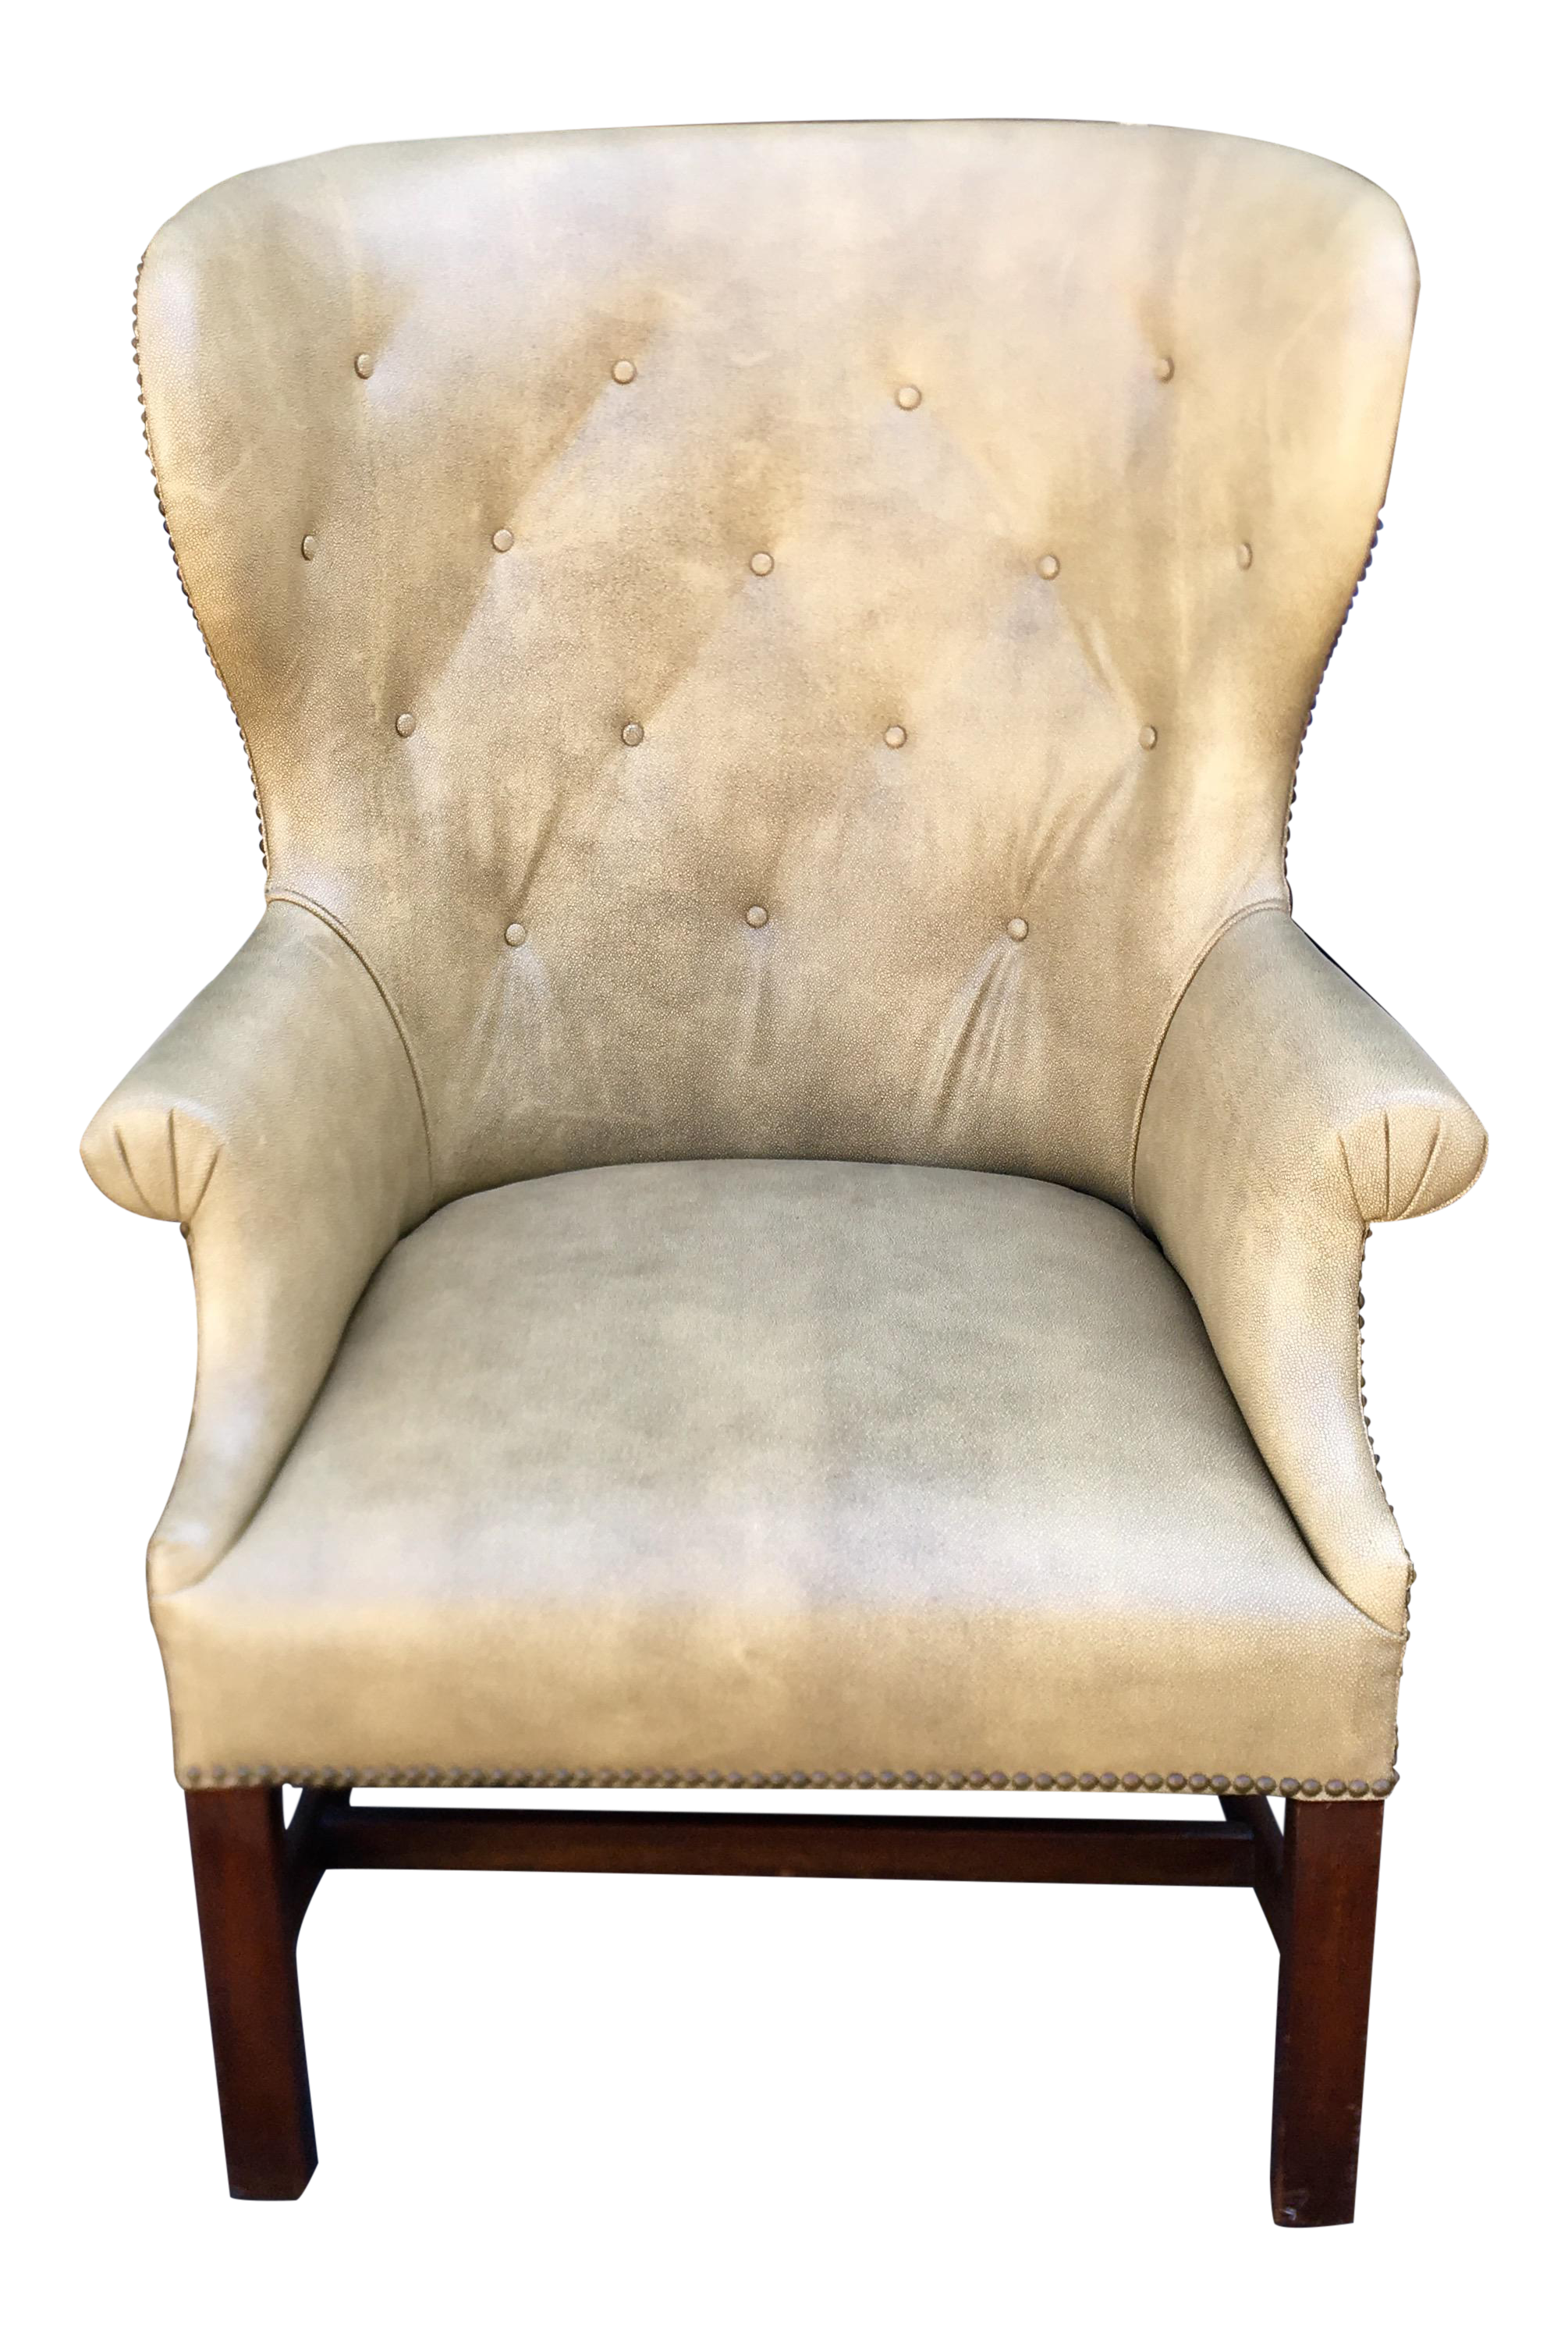 Ordinaire Antique Shagreen Leather Wingback Arm Chair For Sale